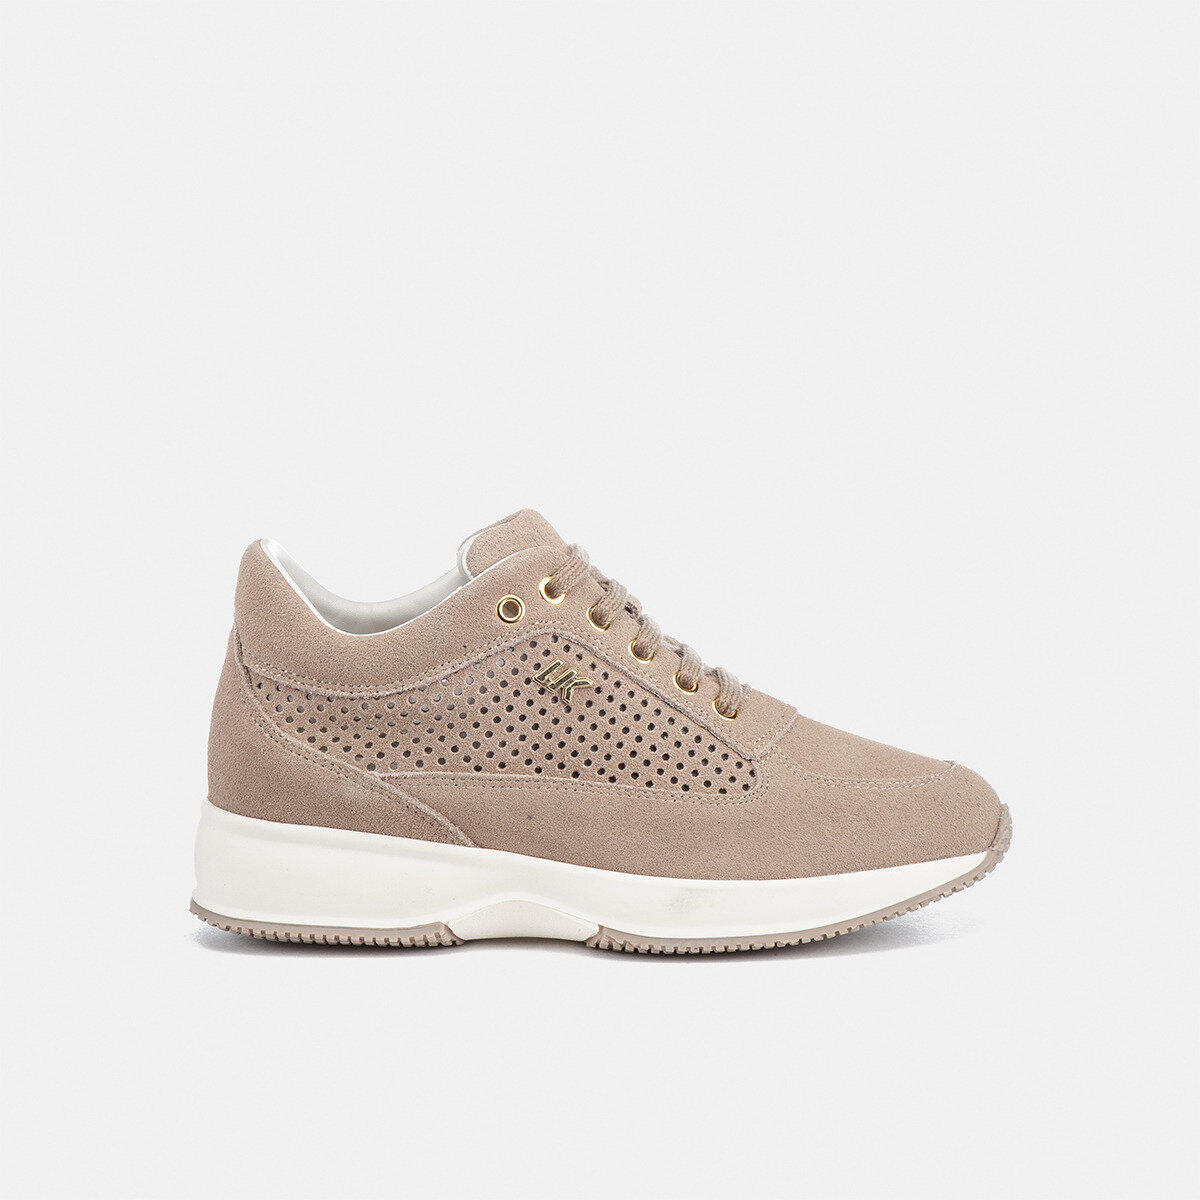 RAUL Taupe Woman Sneakers